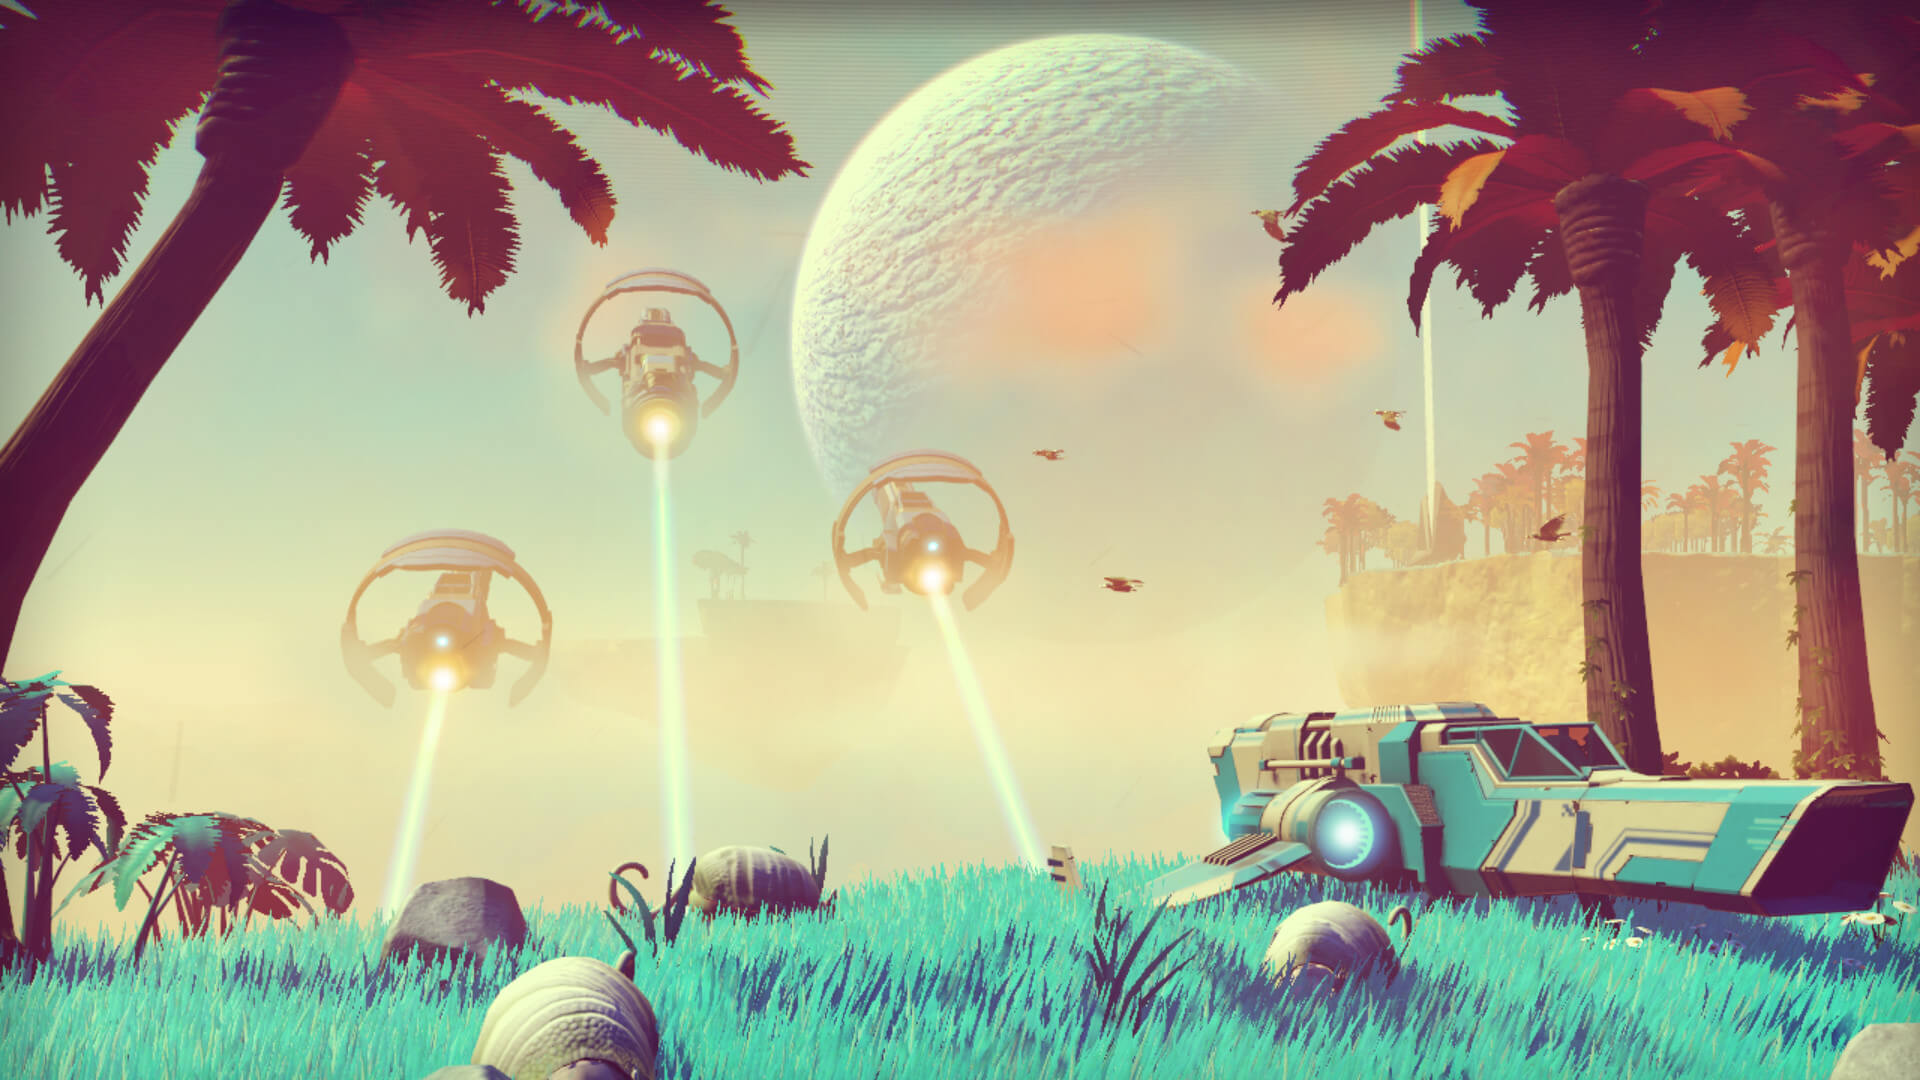 No Man's Sky Feels More Like An Experience Than A Game